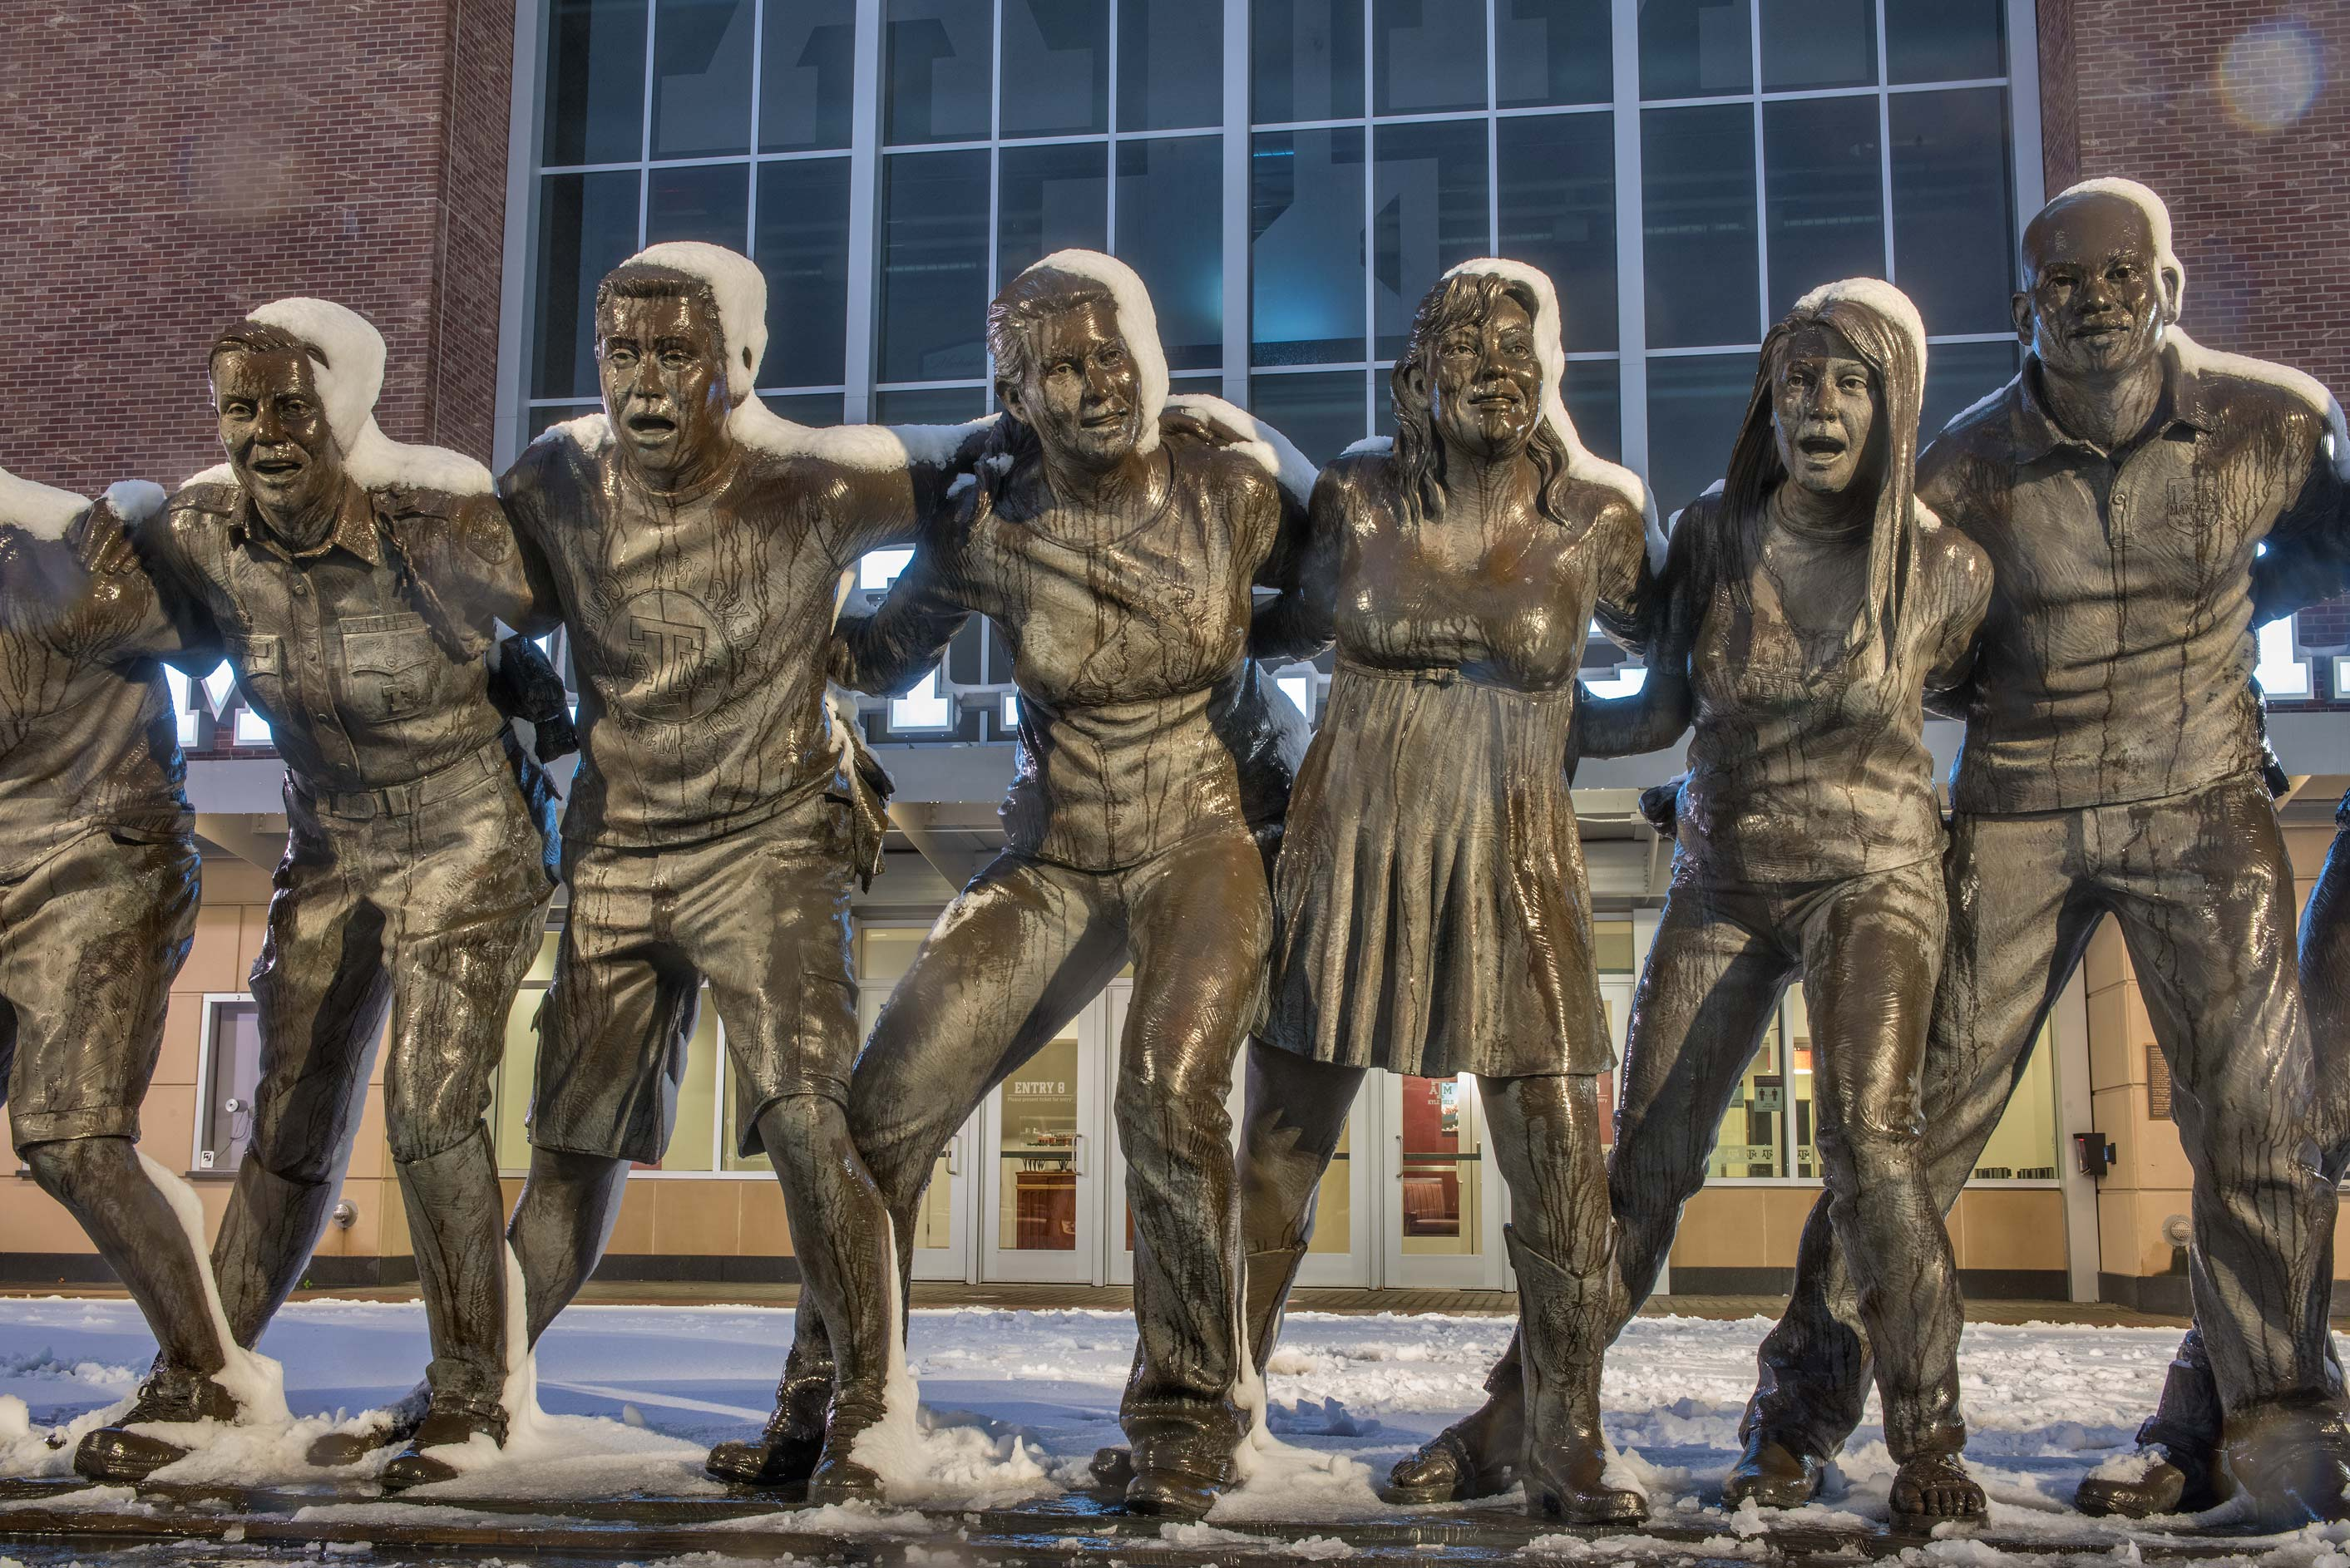 Bronze figures of 12 students covered by wet snow...M University. College Station, Texas